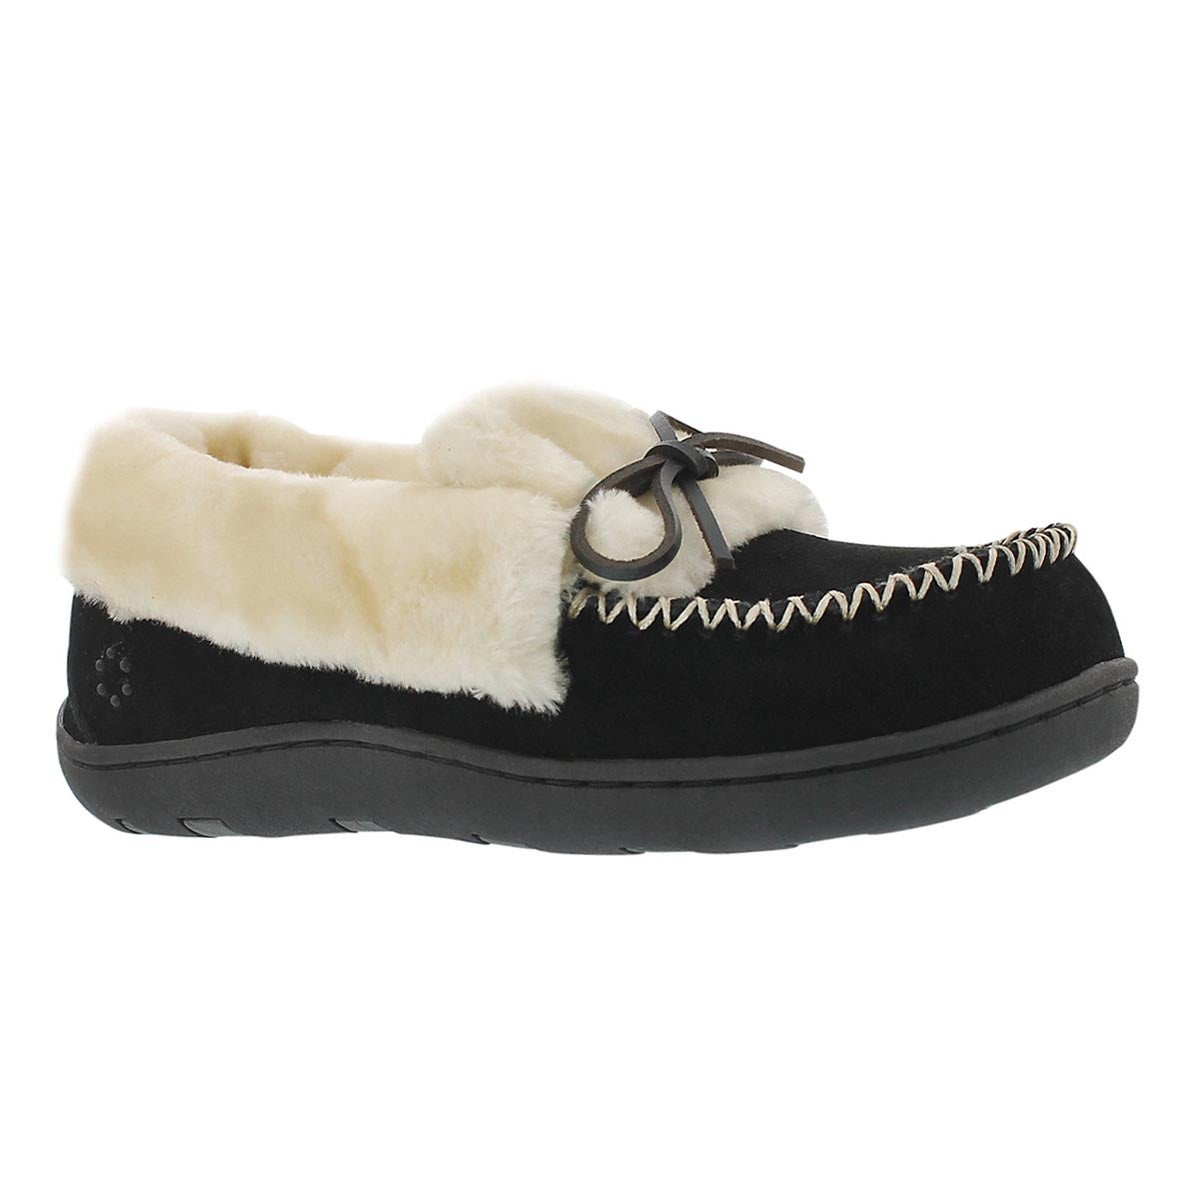 Lds Laurin black lace up moccasin